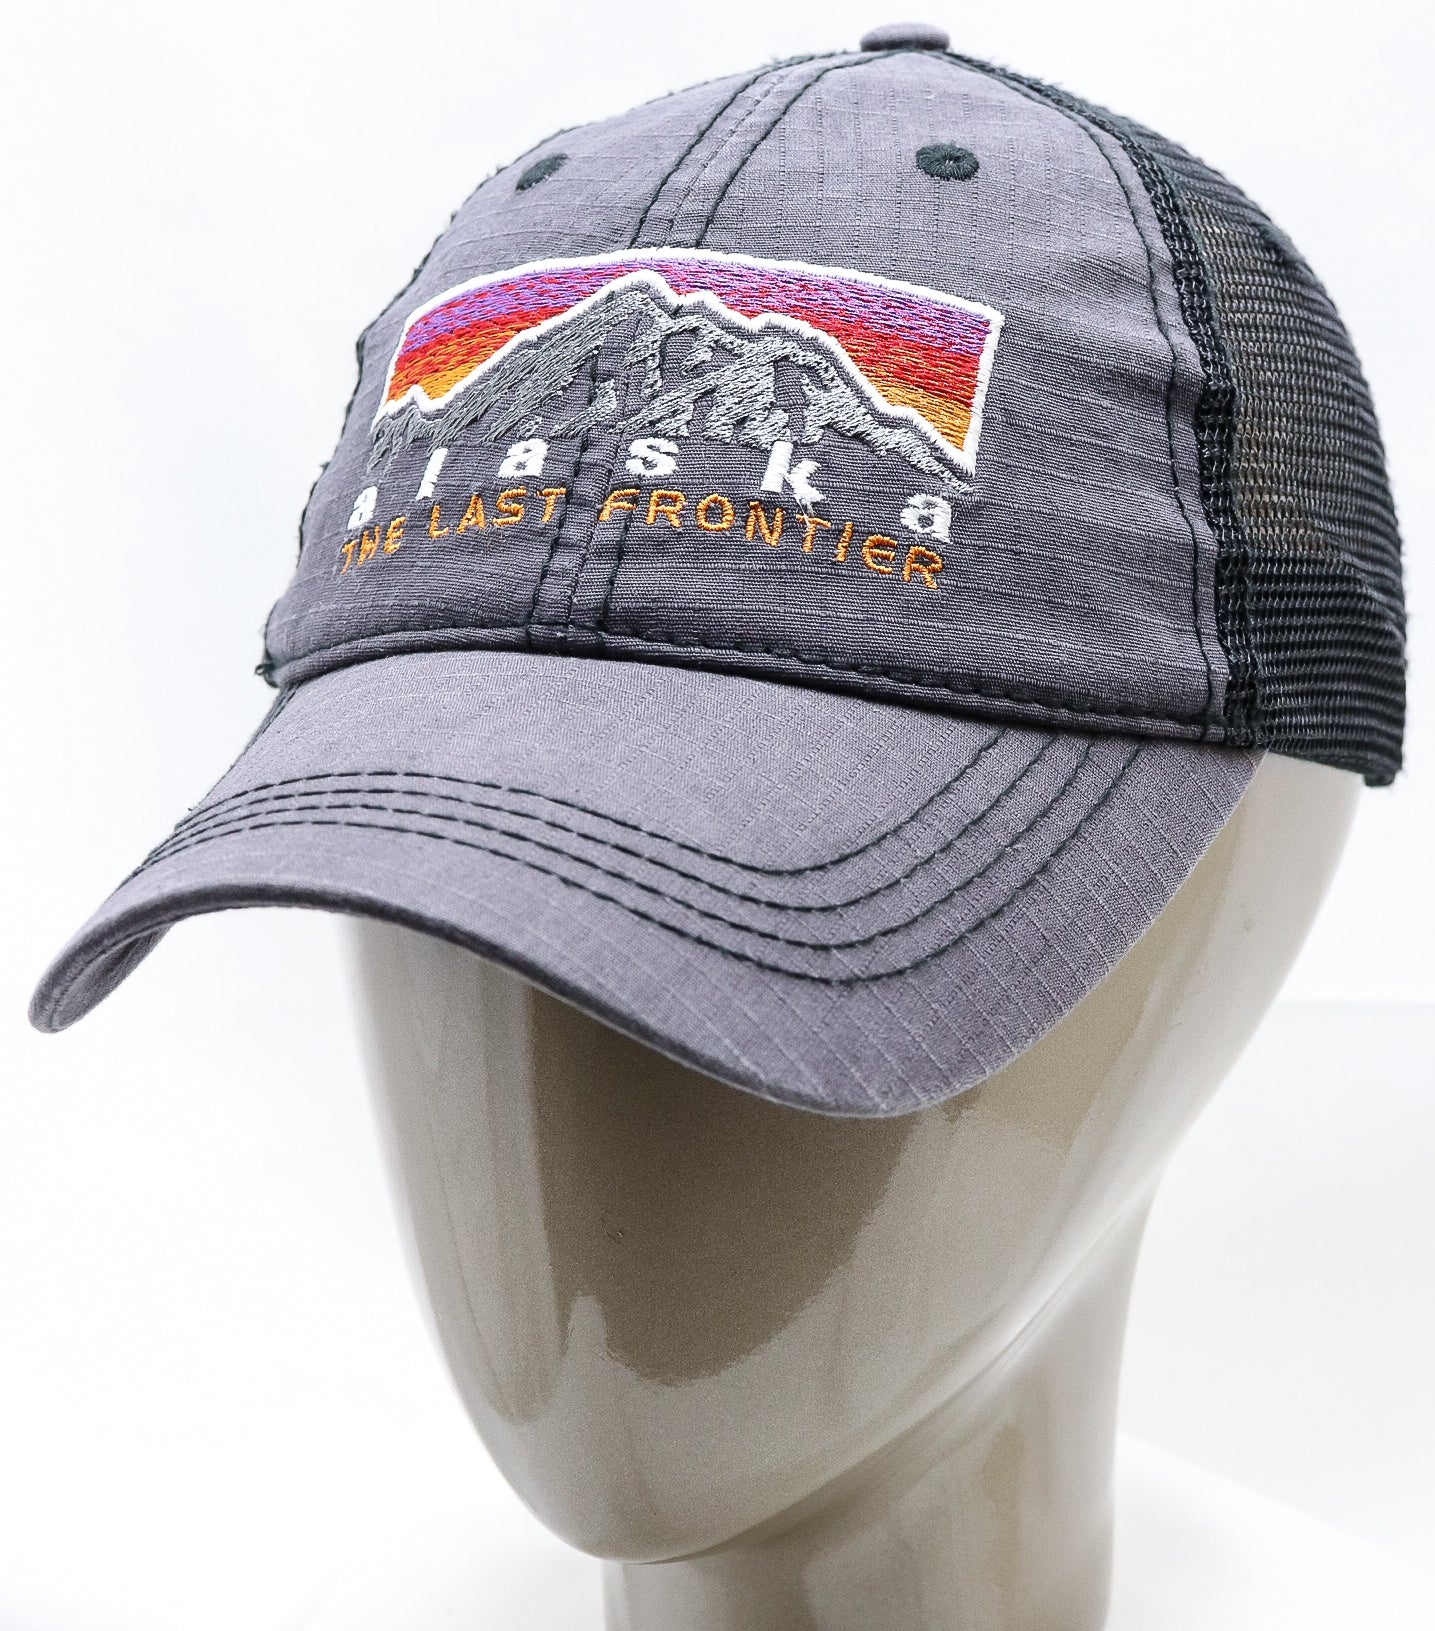 GREY RETRO MOUNTAIN ADJUSTABLE MESH BASEBALL HAT